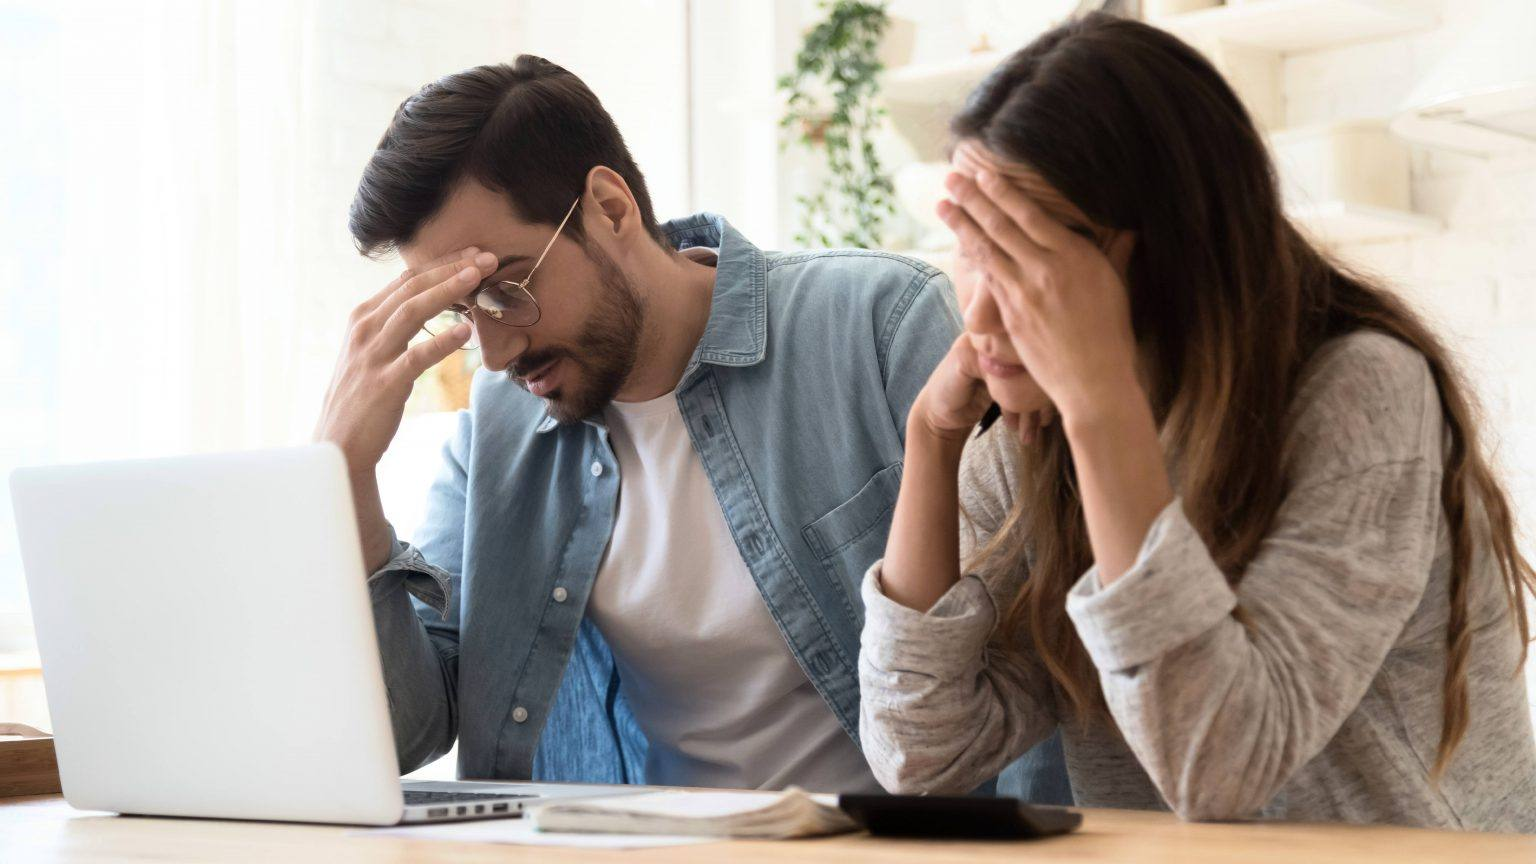 a-young-couple-a-white-man-and-a-white-woman-sitting-together-at-a-kitchen-table-looking-stressed-sad-worried-while-working-on-a-computer-16x9-1-1536x864